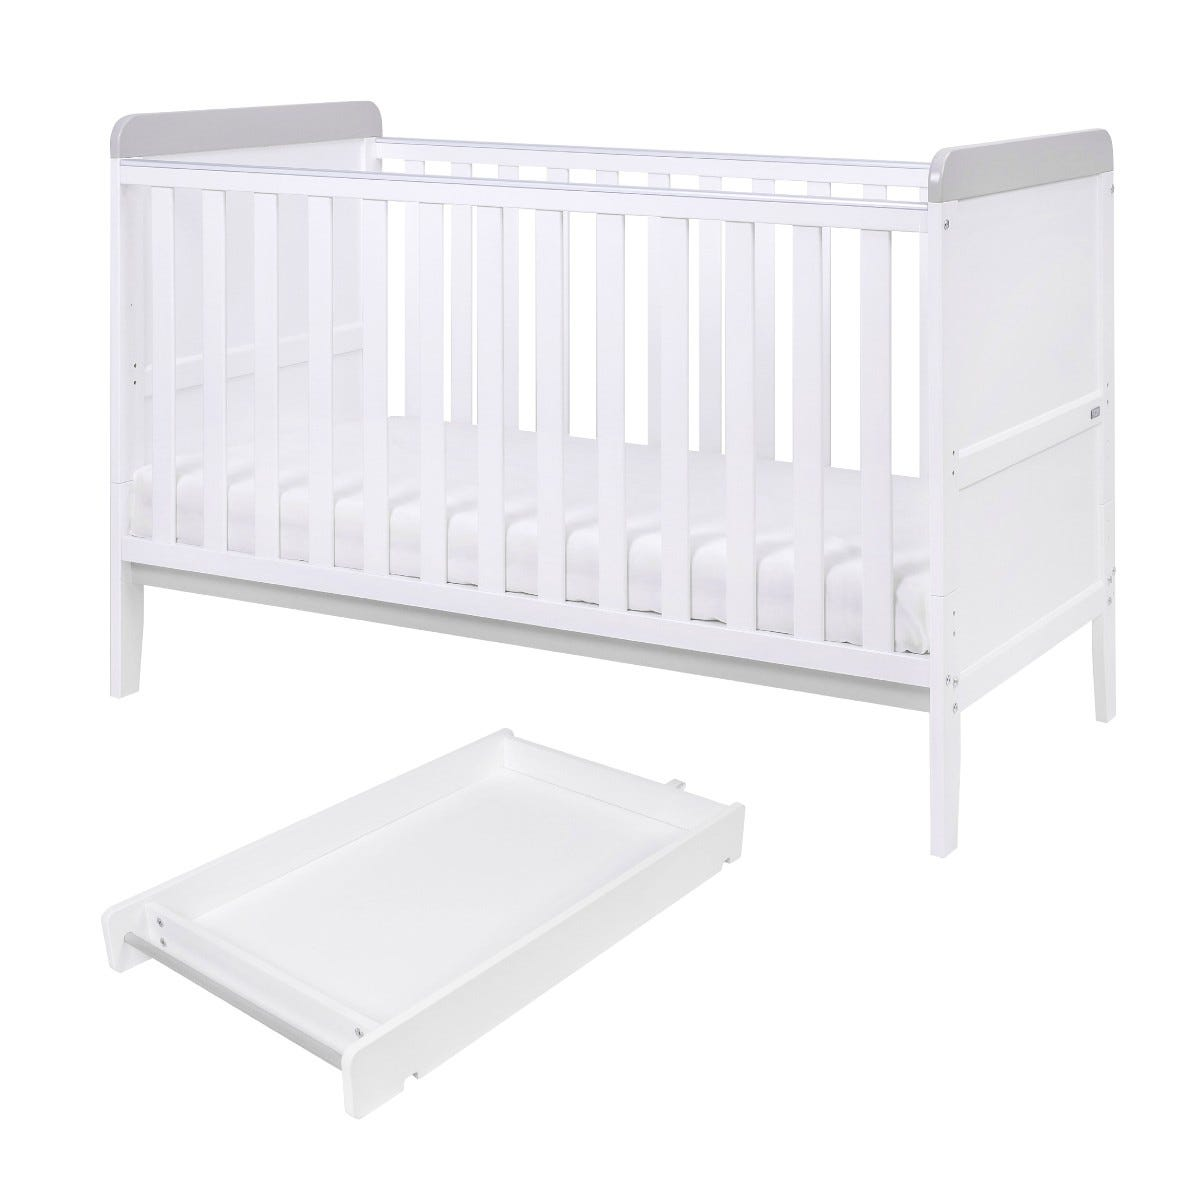 Tutti Bambini Rio Cot Bed with Cot Top Changer & Mattress White and Dove Grey